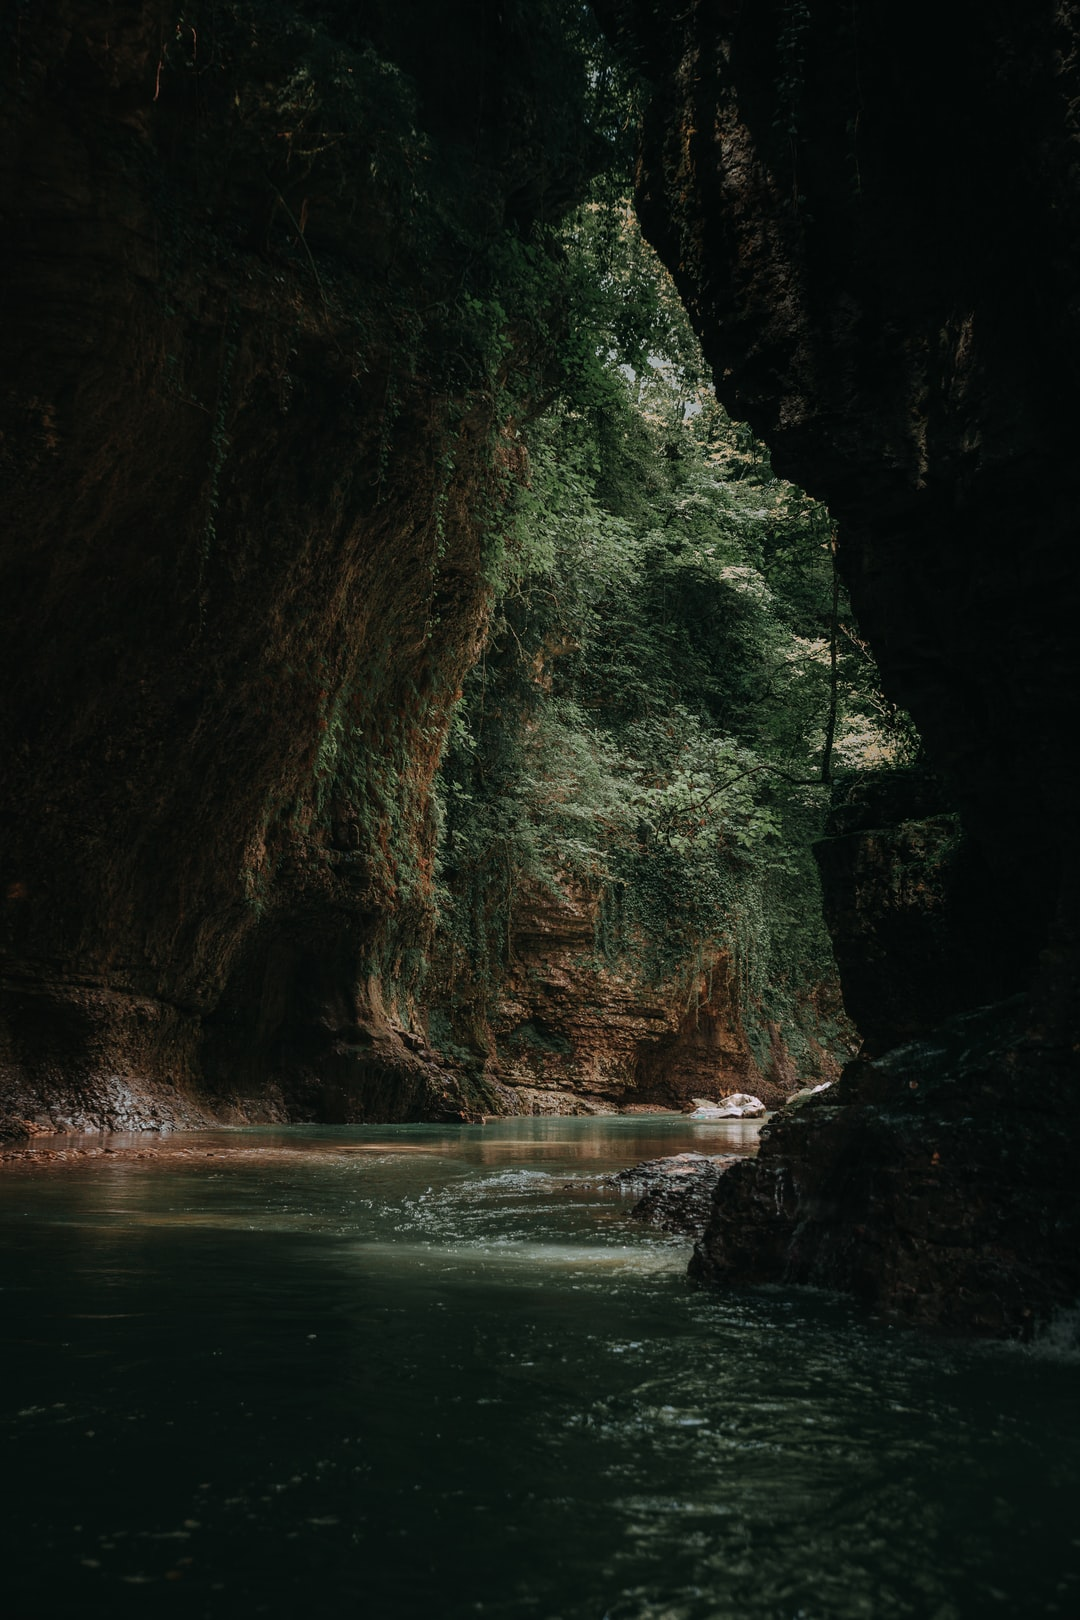 Some deep green mood from Martvili Canyon, located in Semegrelo-Zemo Svaneti province of Georgia.